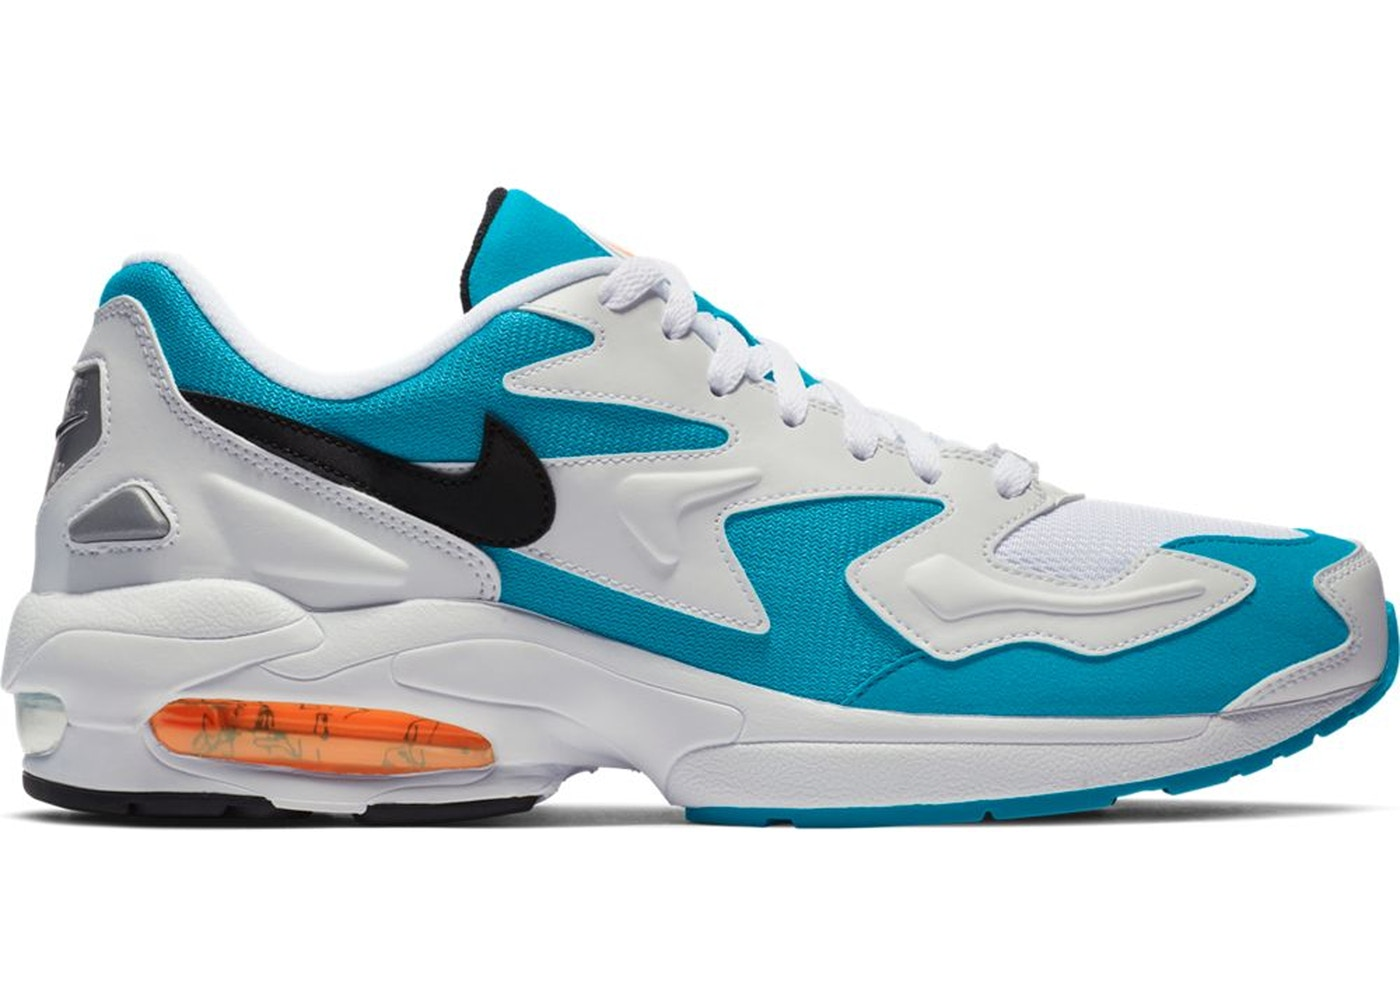 uk availability 6663d d5cc2 Air Max2 Light Blue Lagoon - AO1741-100